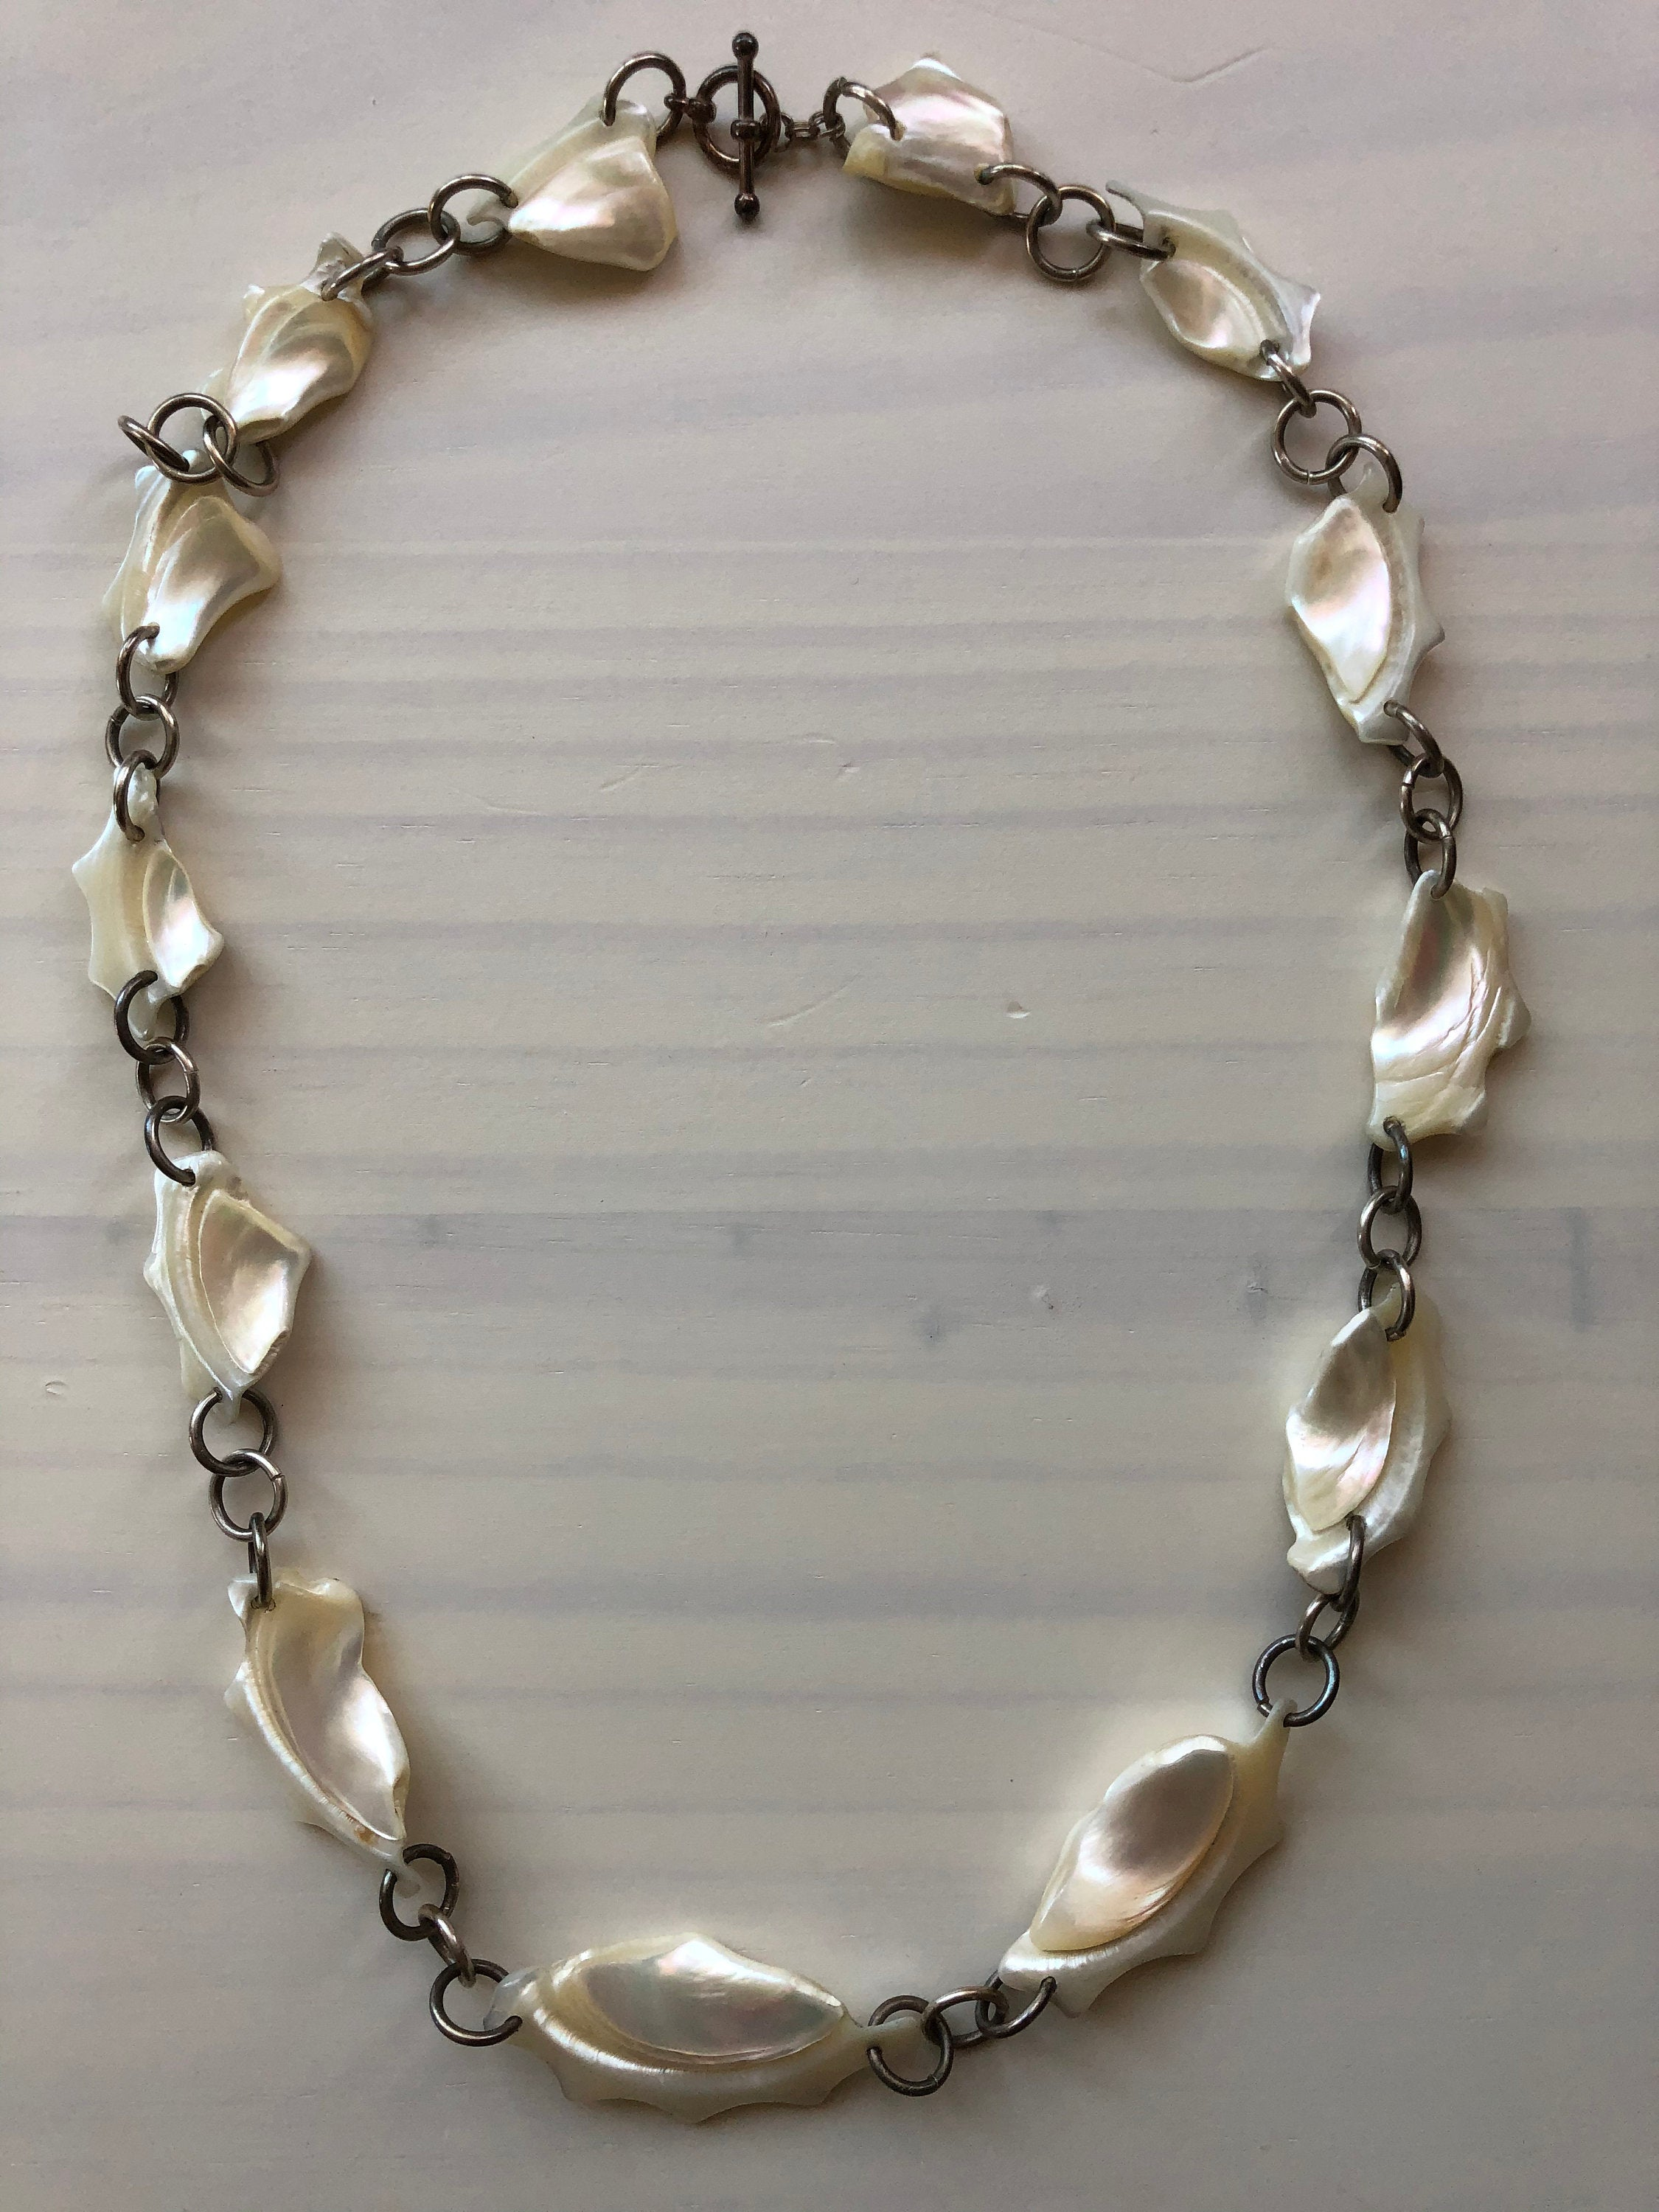 Chunky shell and silver chain necklace on pale wood background